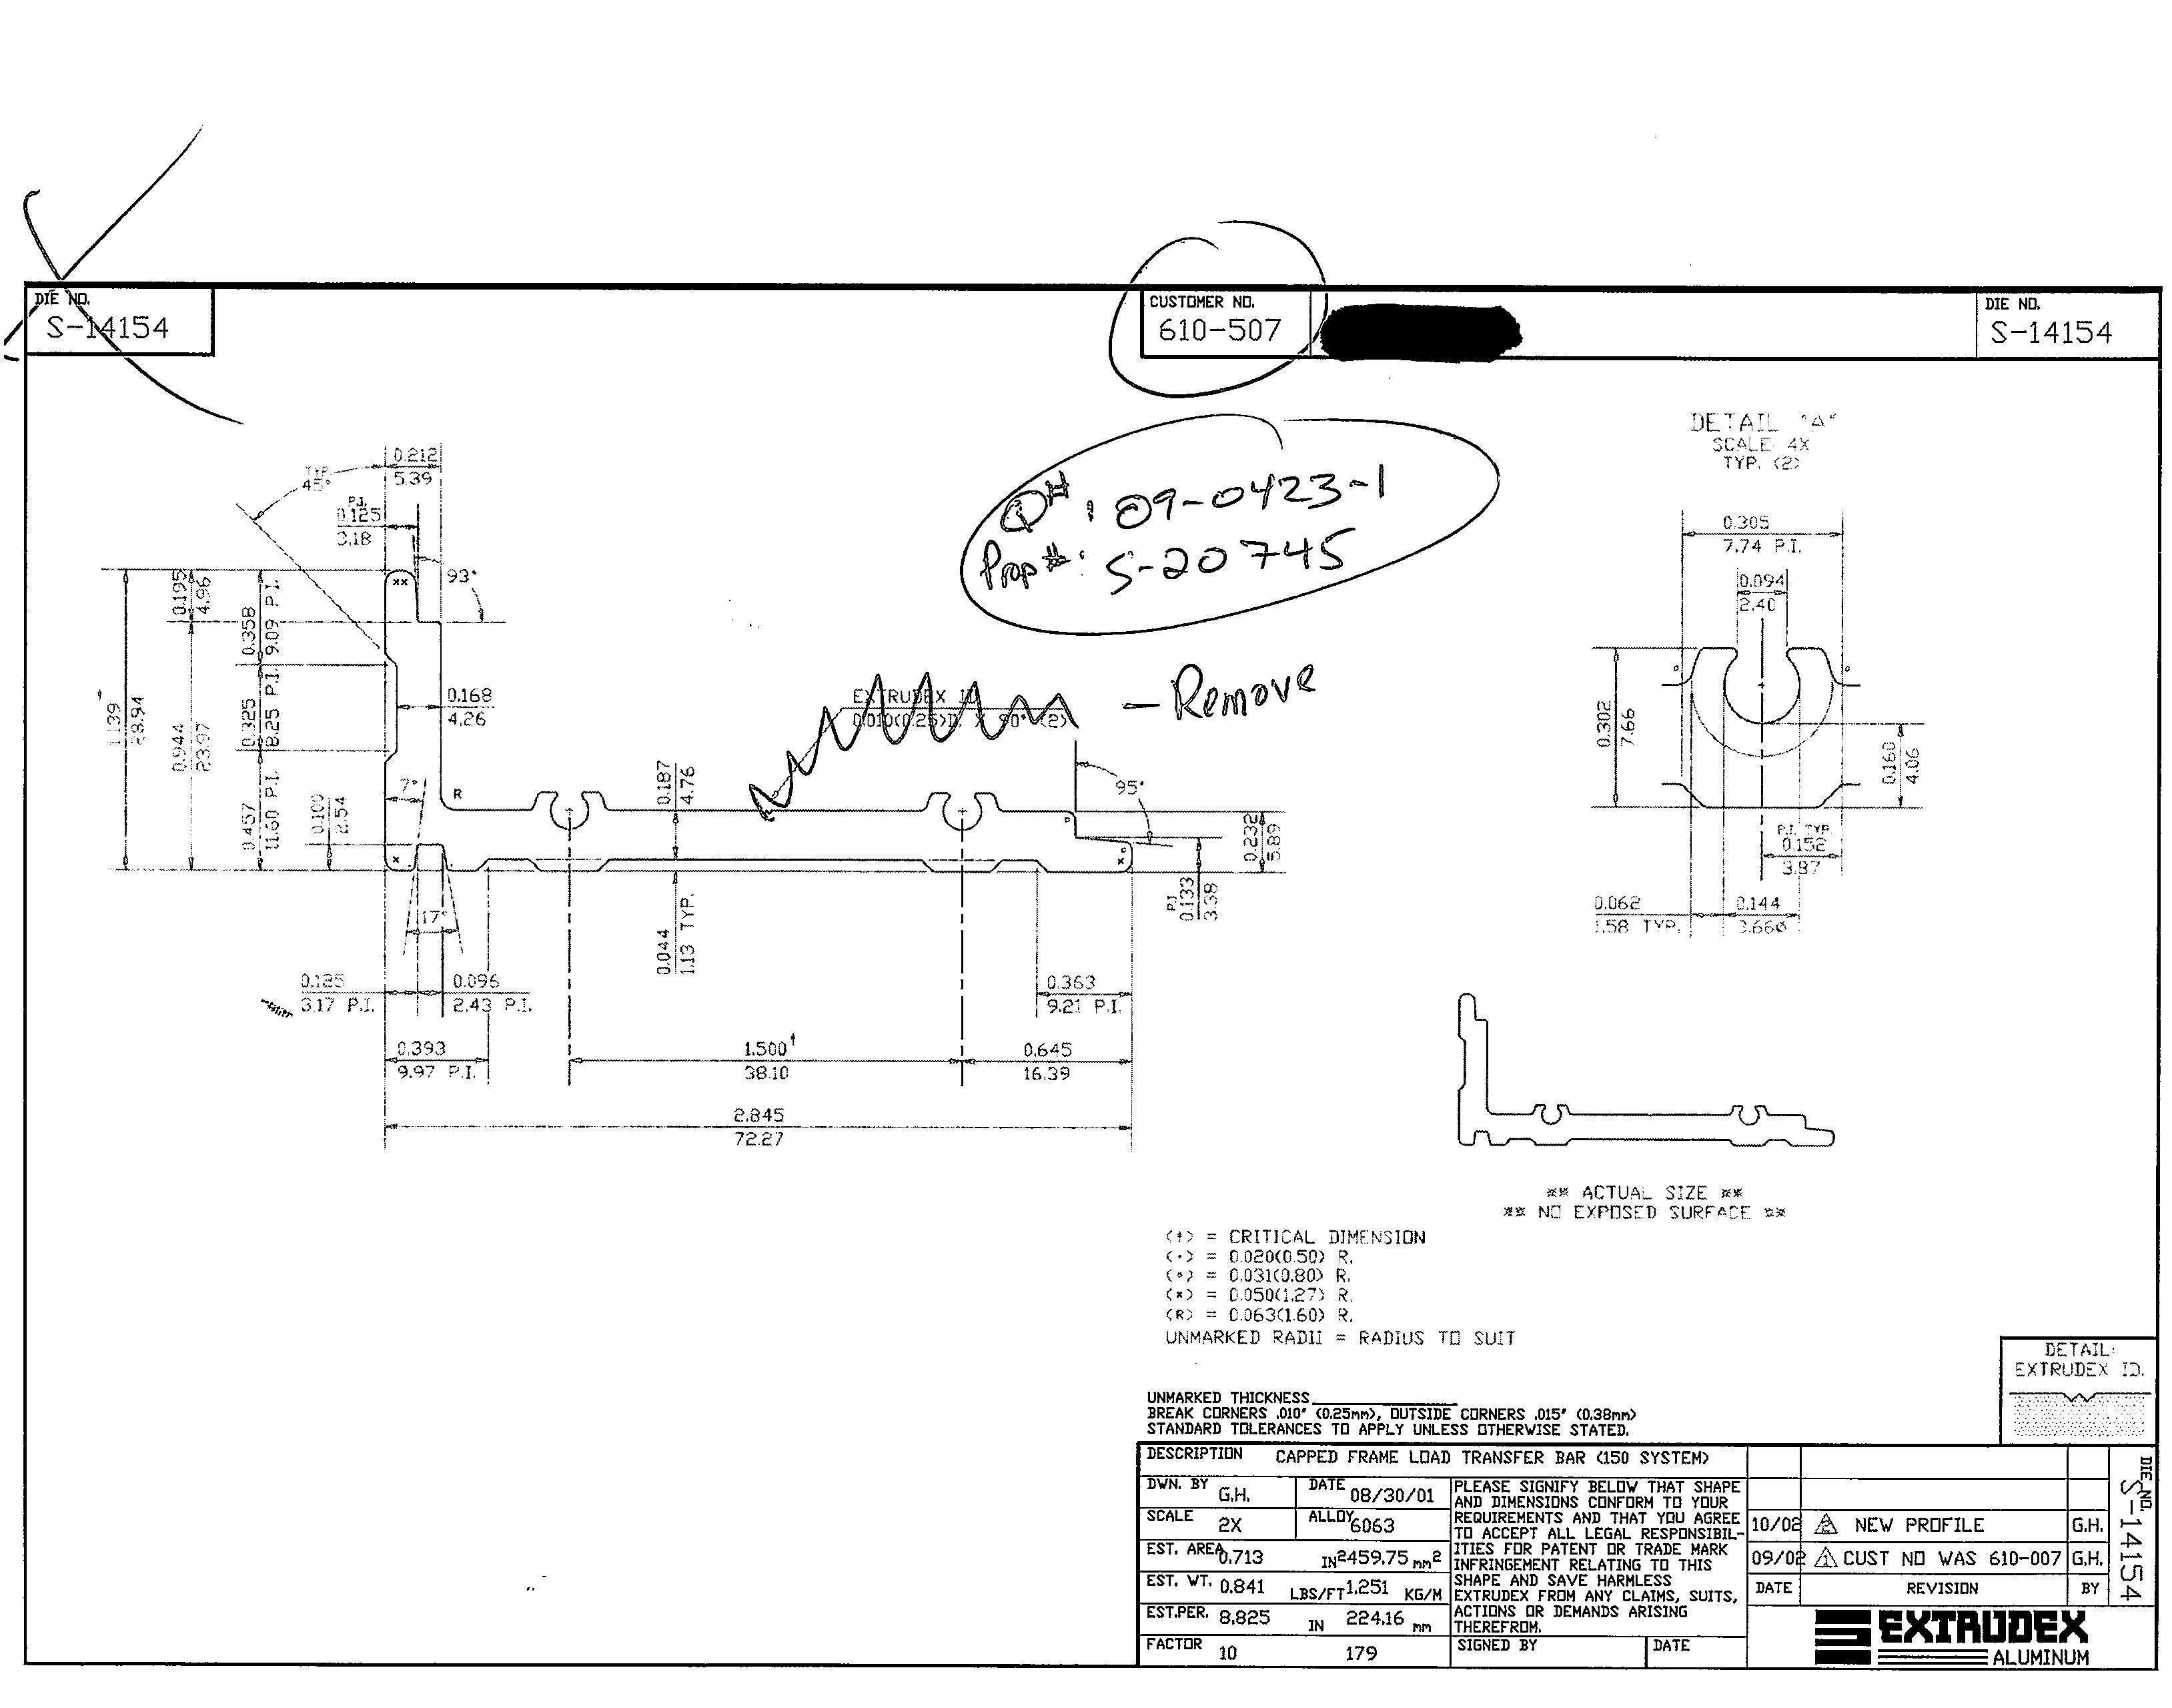 2d Mechanical Cad Drafting Autocad Designing Service Outsource Hvac Drawing In Input